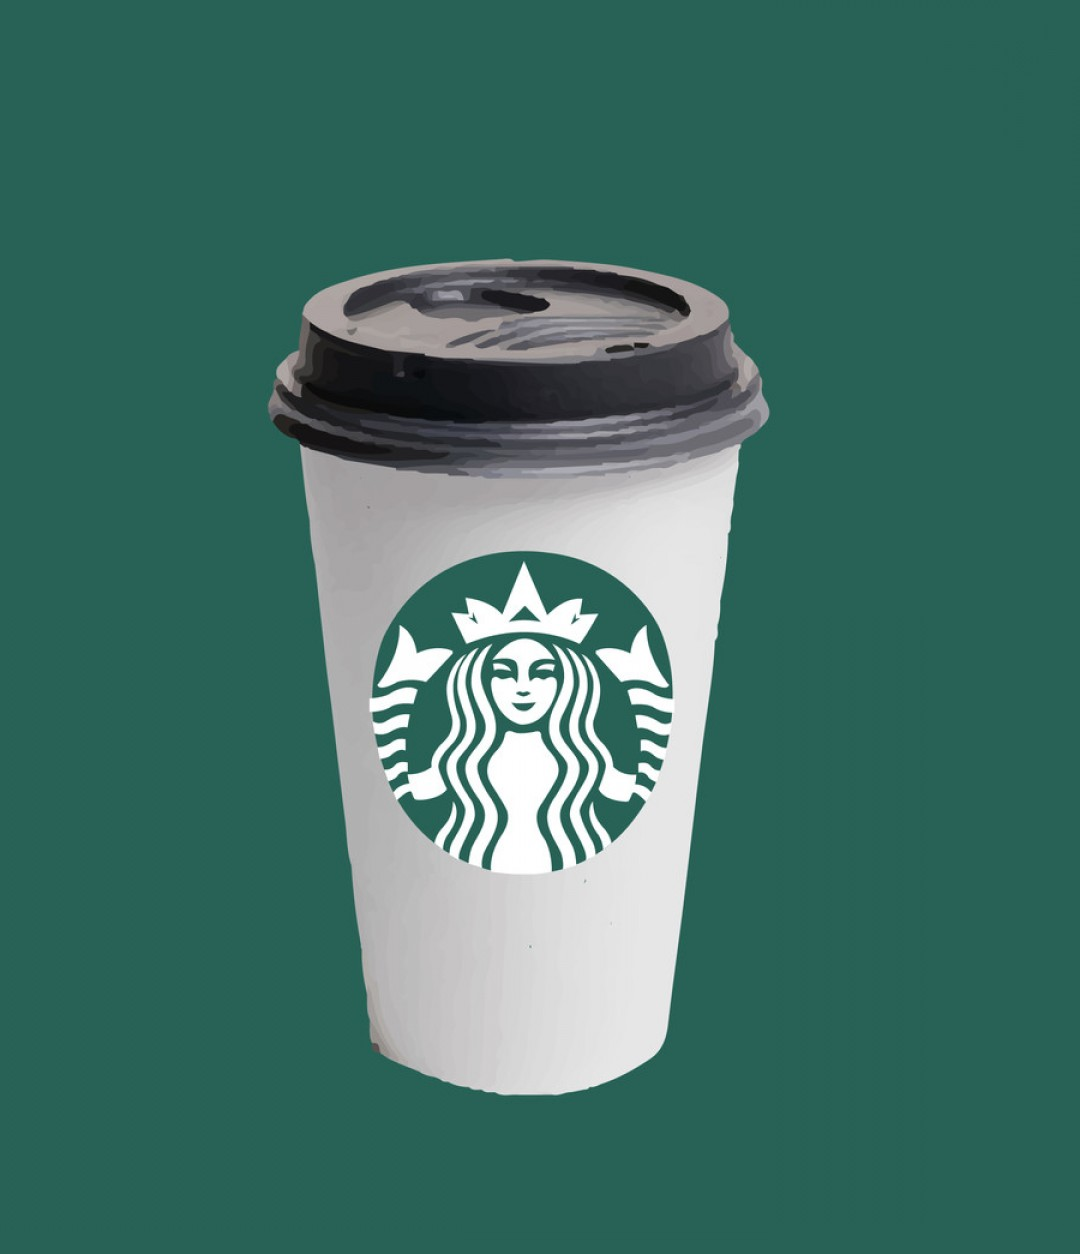 Starbucks China Vector: Illustration Of A Starbucks Coffe Cup In Vector Style Byentry